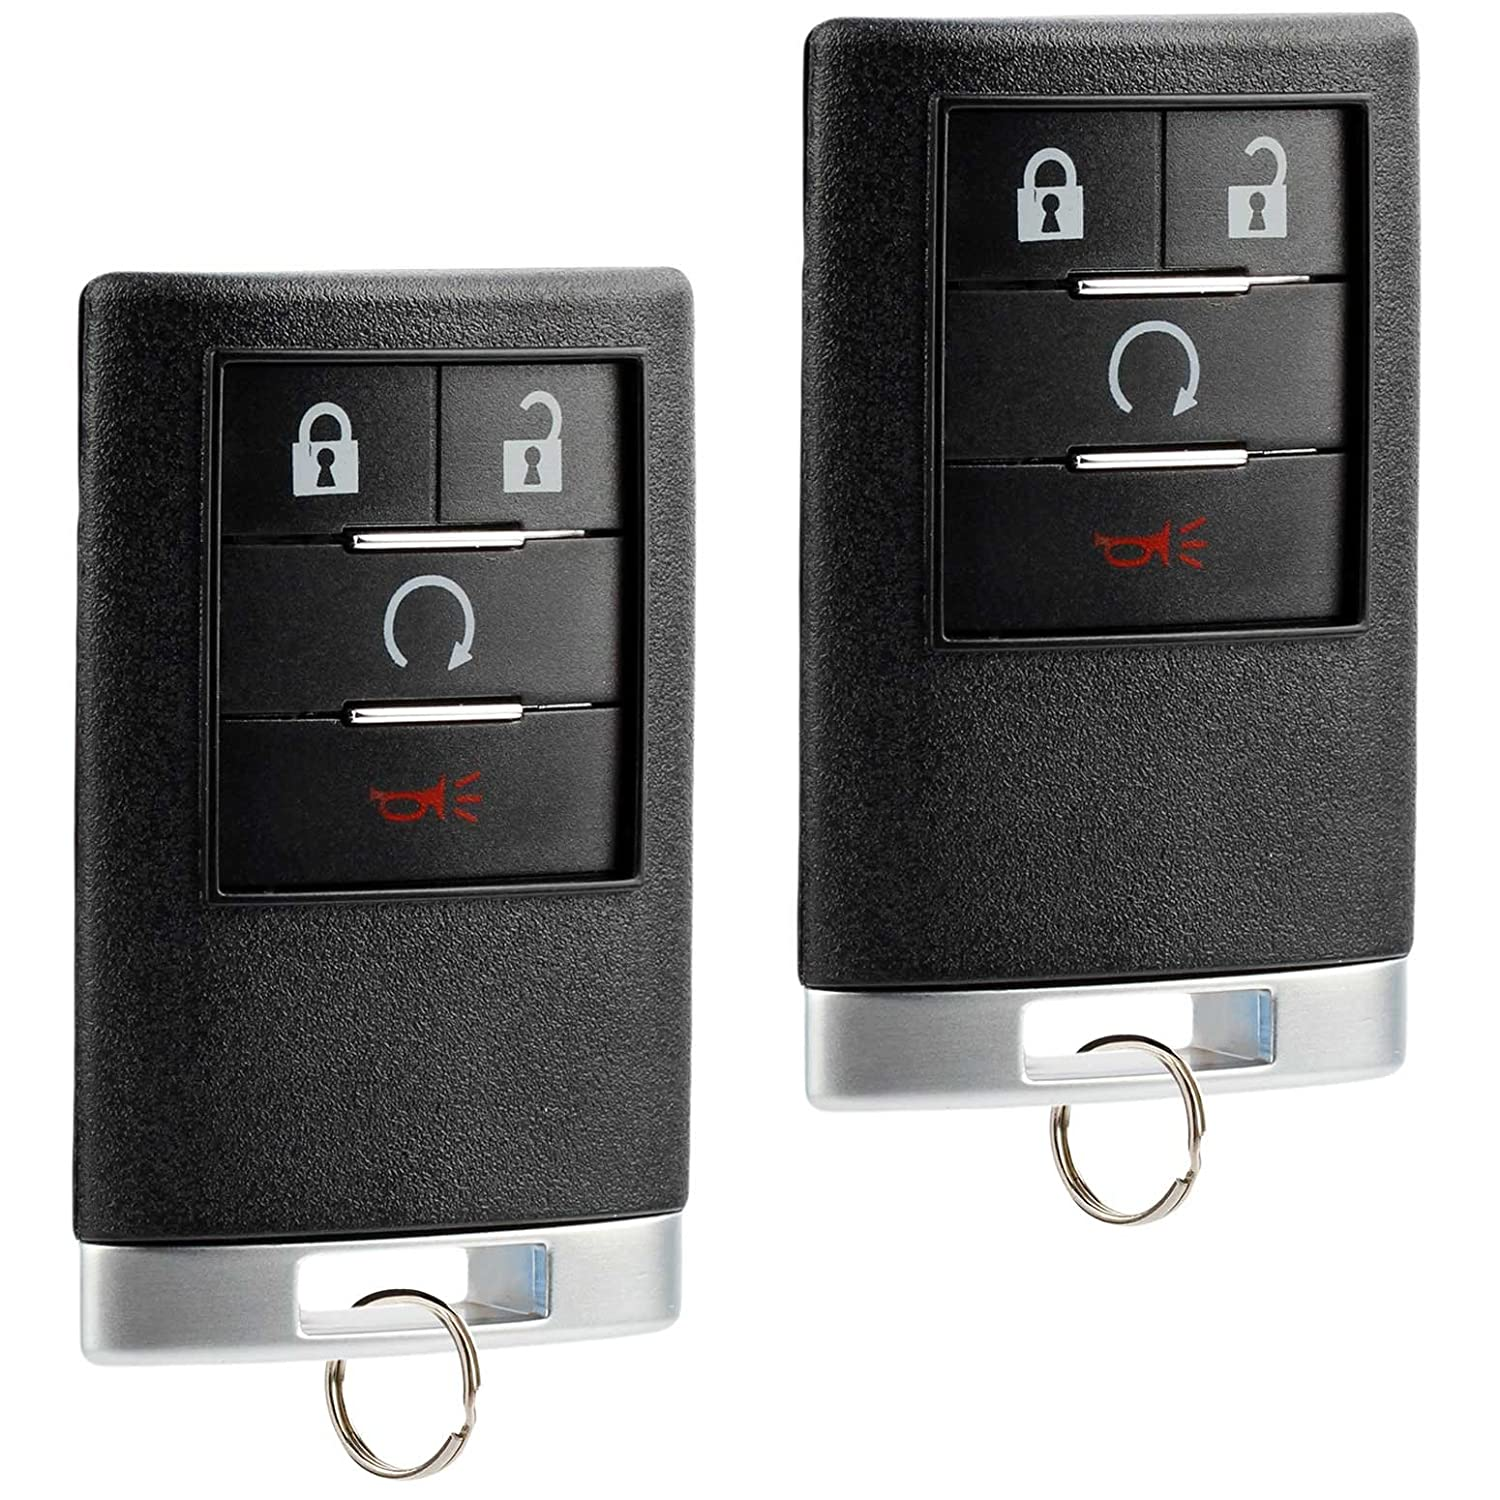 Not for Push to Start USARemote 2 fits 2007-2014 Cadillac Escalade ESV EXT Key Fob Keyless Entry Remote OUC6000066